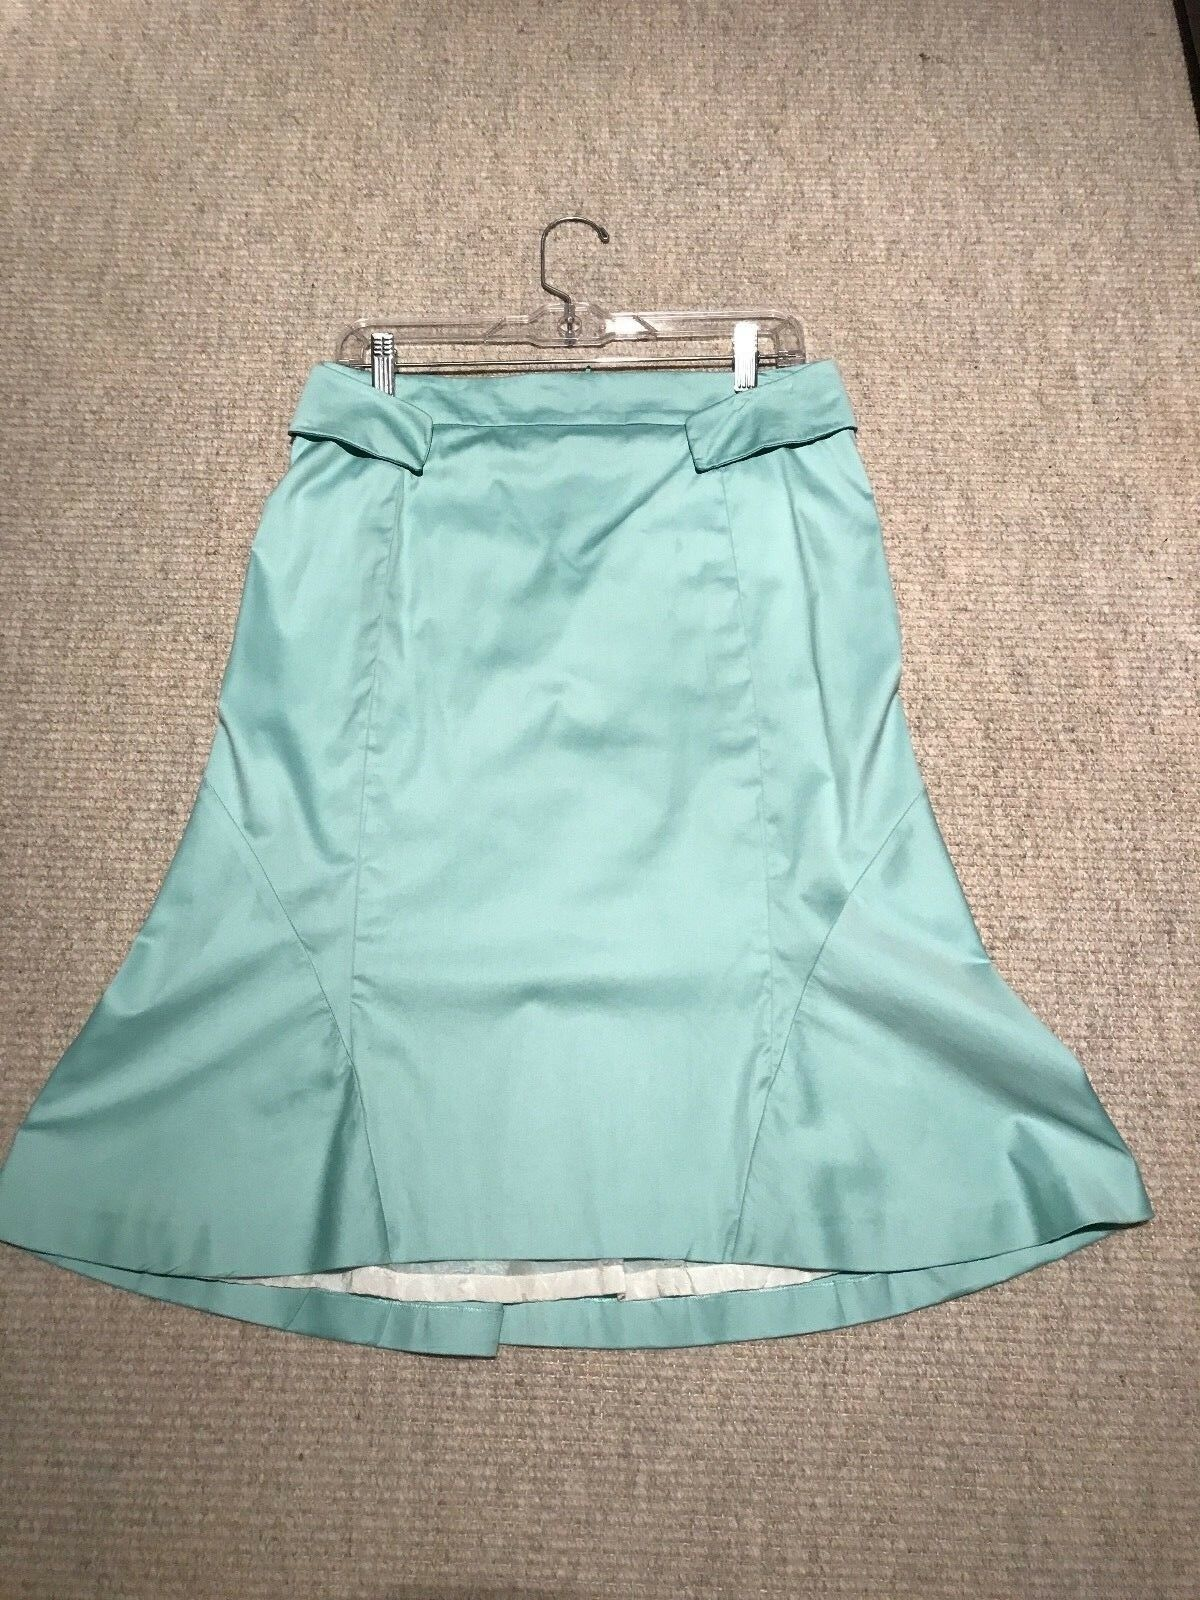 JIL SANDER WOMEN'S TURQUOISE GREEN A-LINE COTTON KNEE SKIRT SIZE IT 38 (US 4)